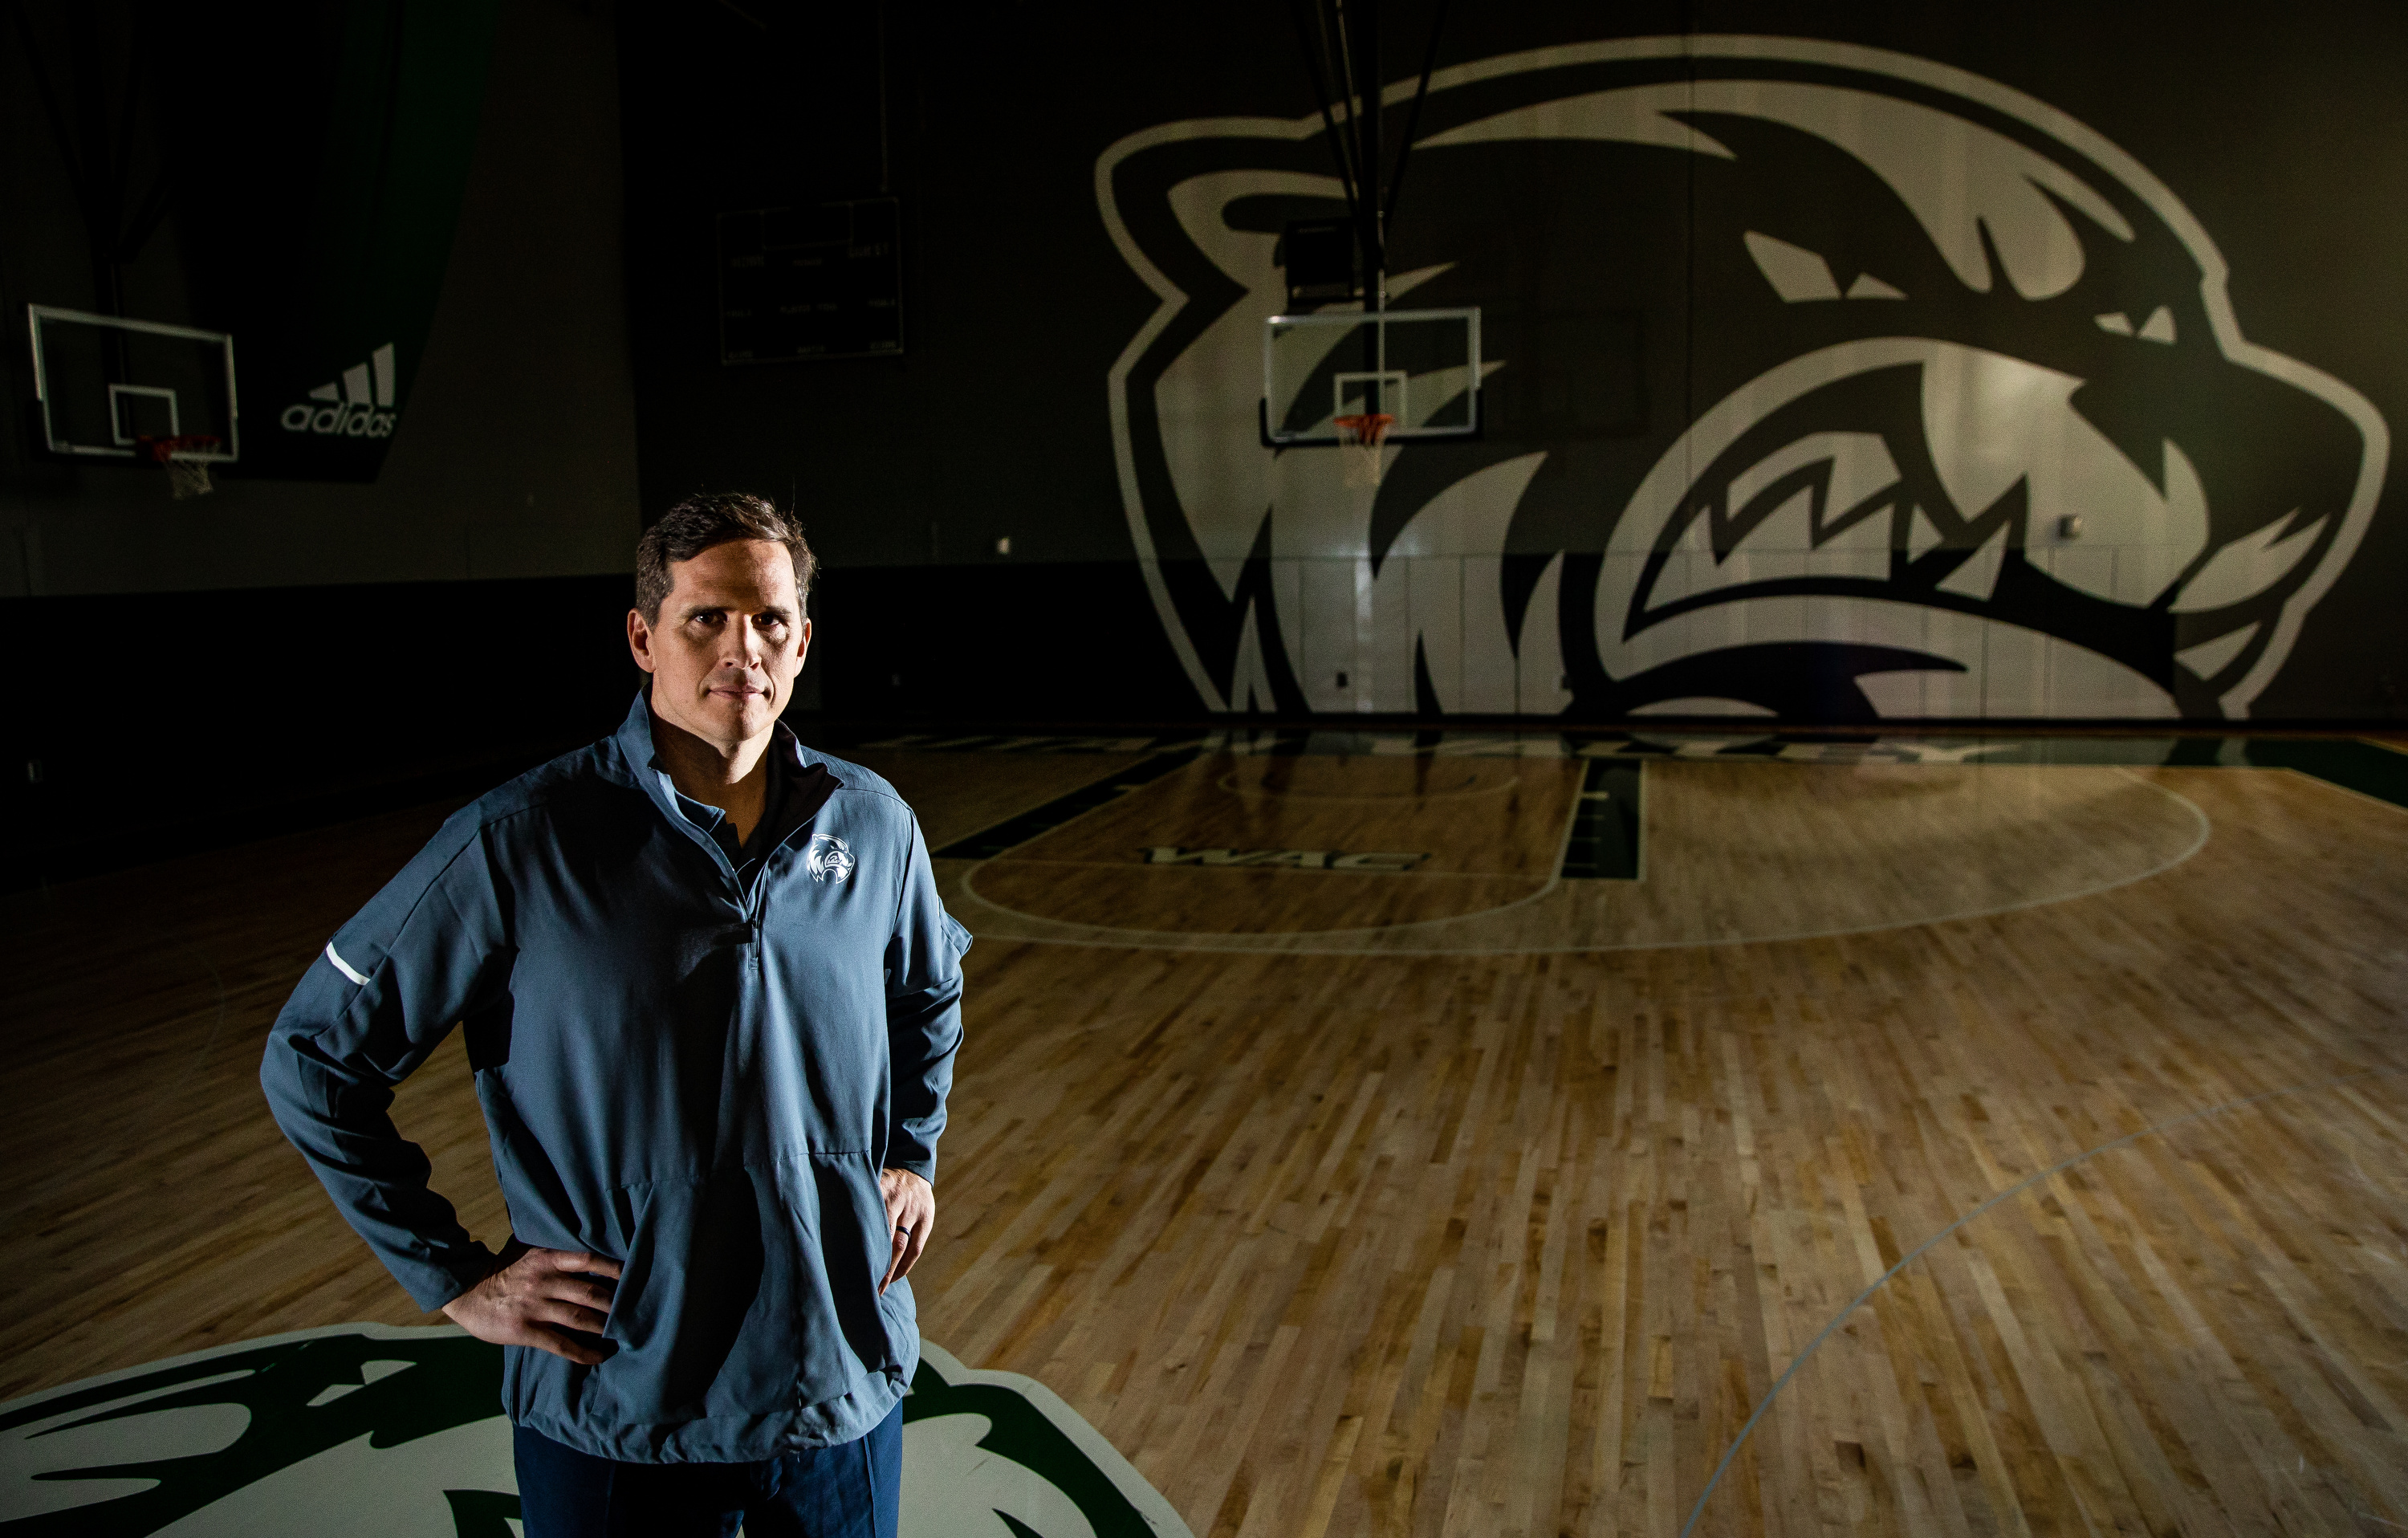 20190509 Utah Valley University basketball head coach Mark Madsen poses for a photo at the team's practice facility in Orem on Thursday, May 9, 2019.